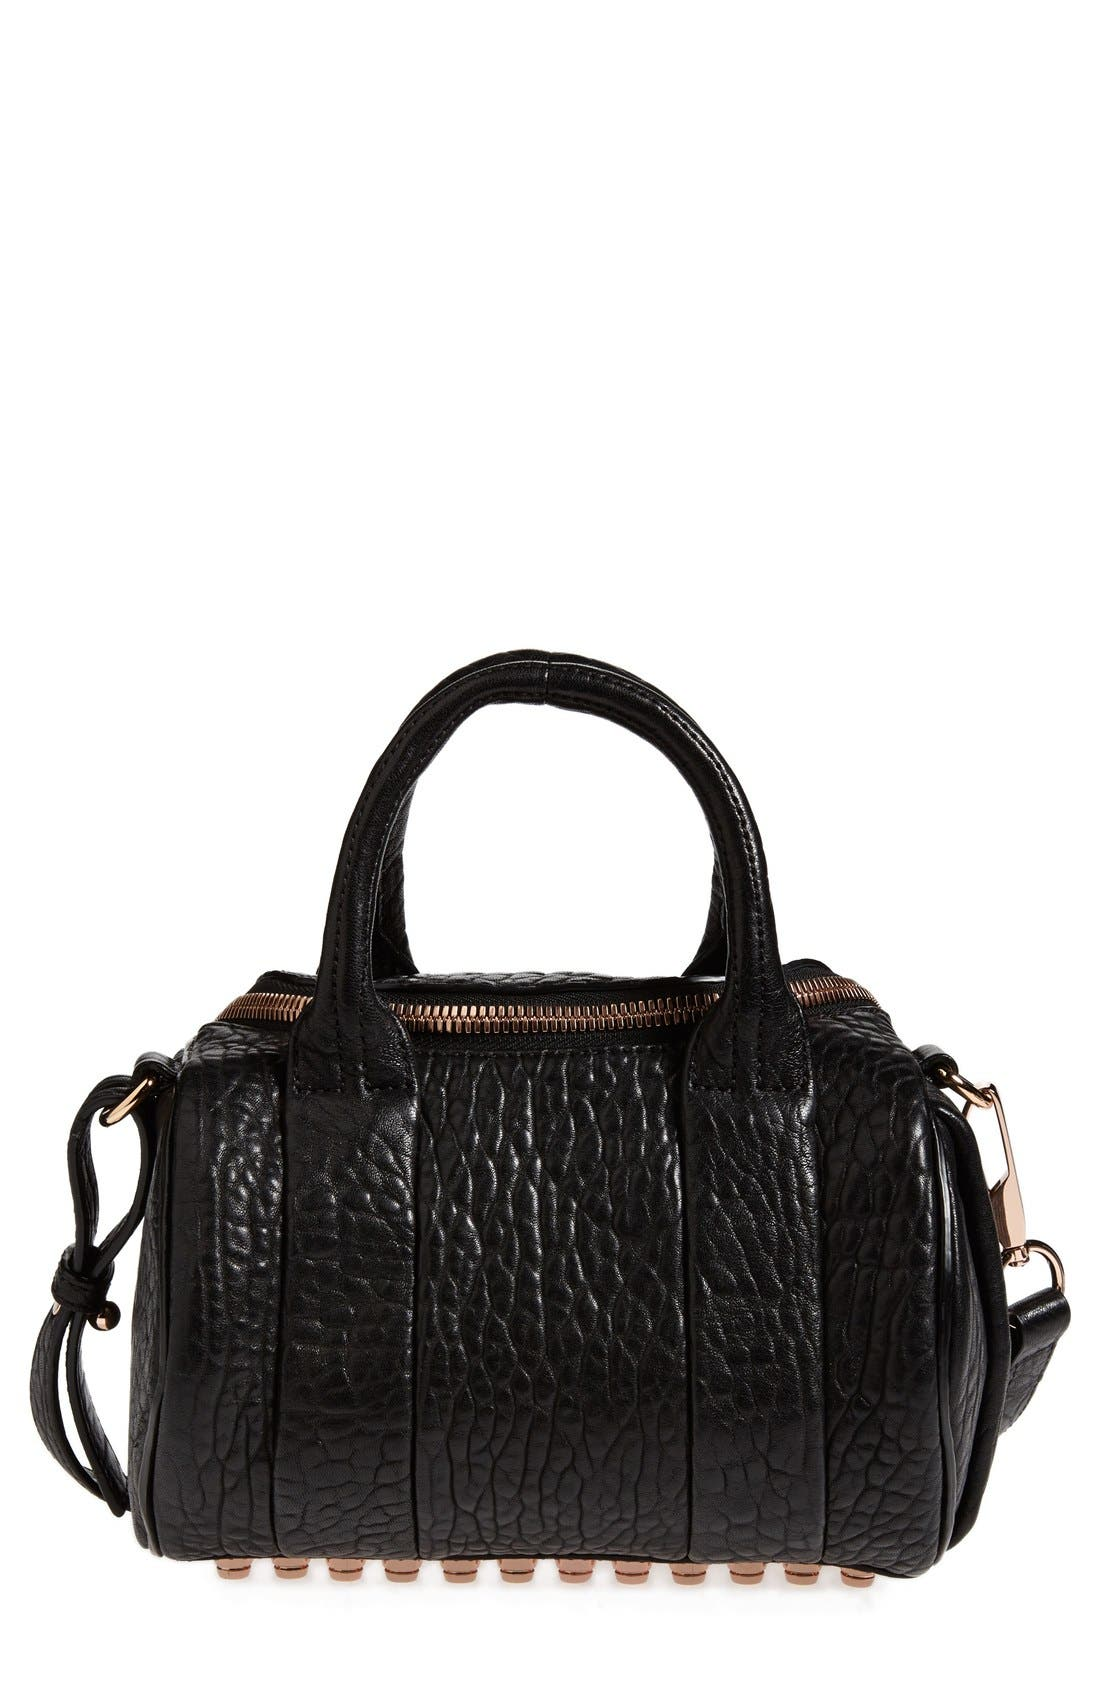 ALEXANDER WANG 'Mini Rockie - Rose Gold' Leather